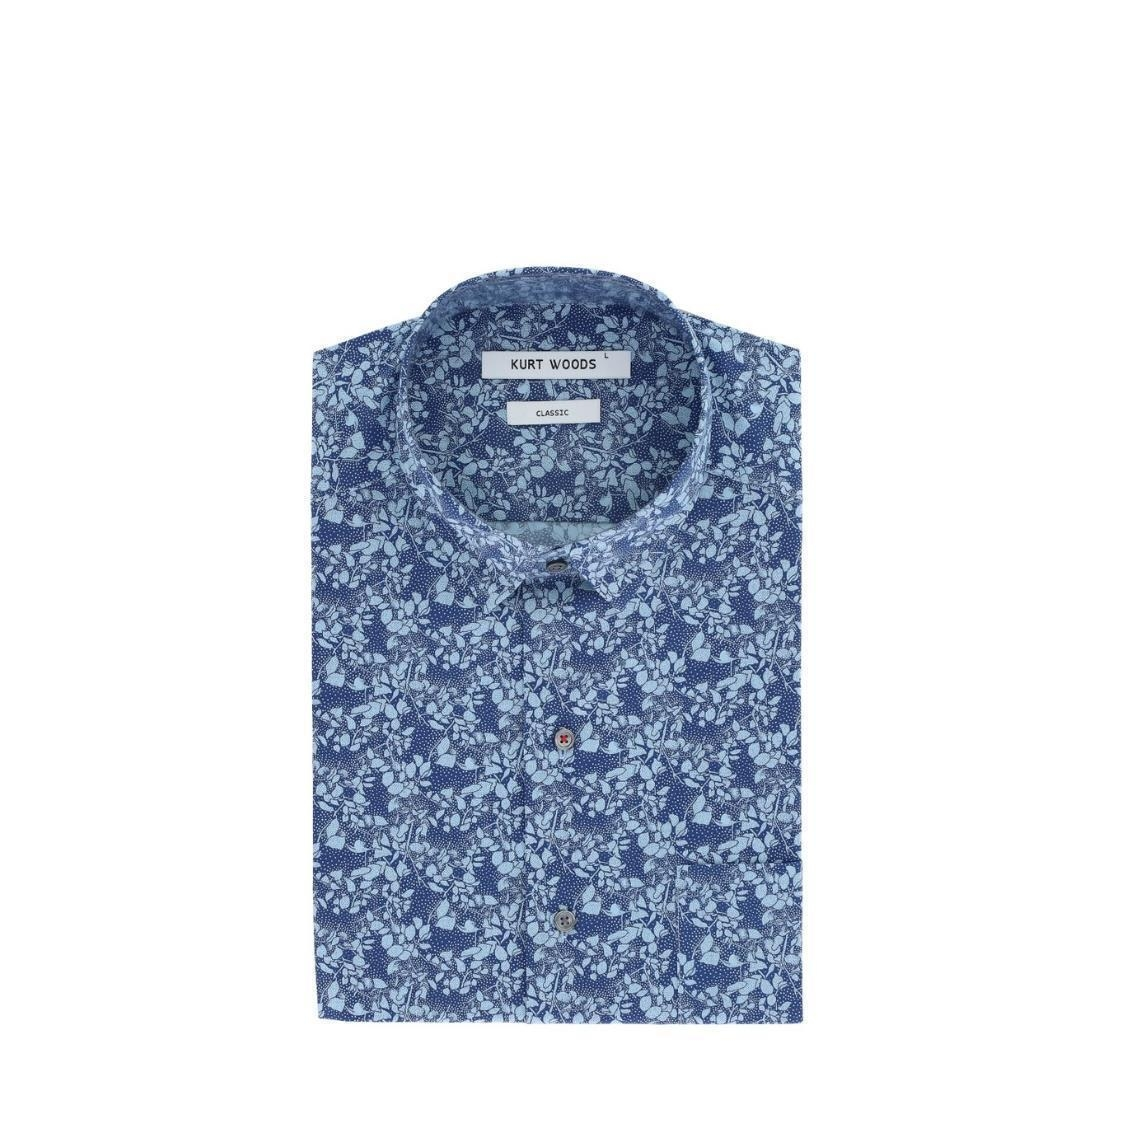 Short Sleeve Navy Floral Printed Classic Fit Cotton Shirt